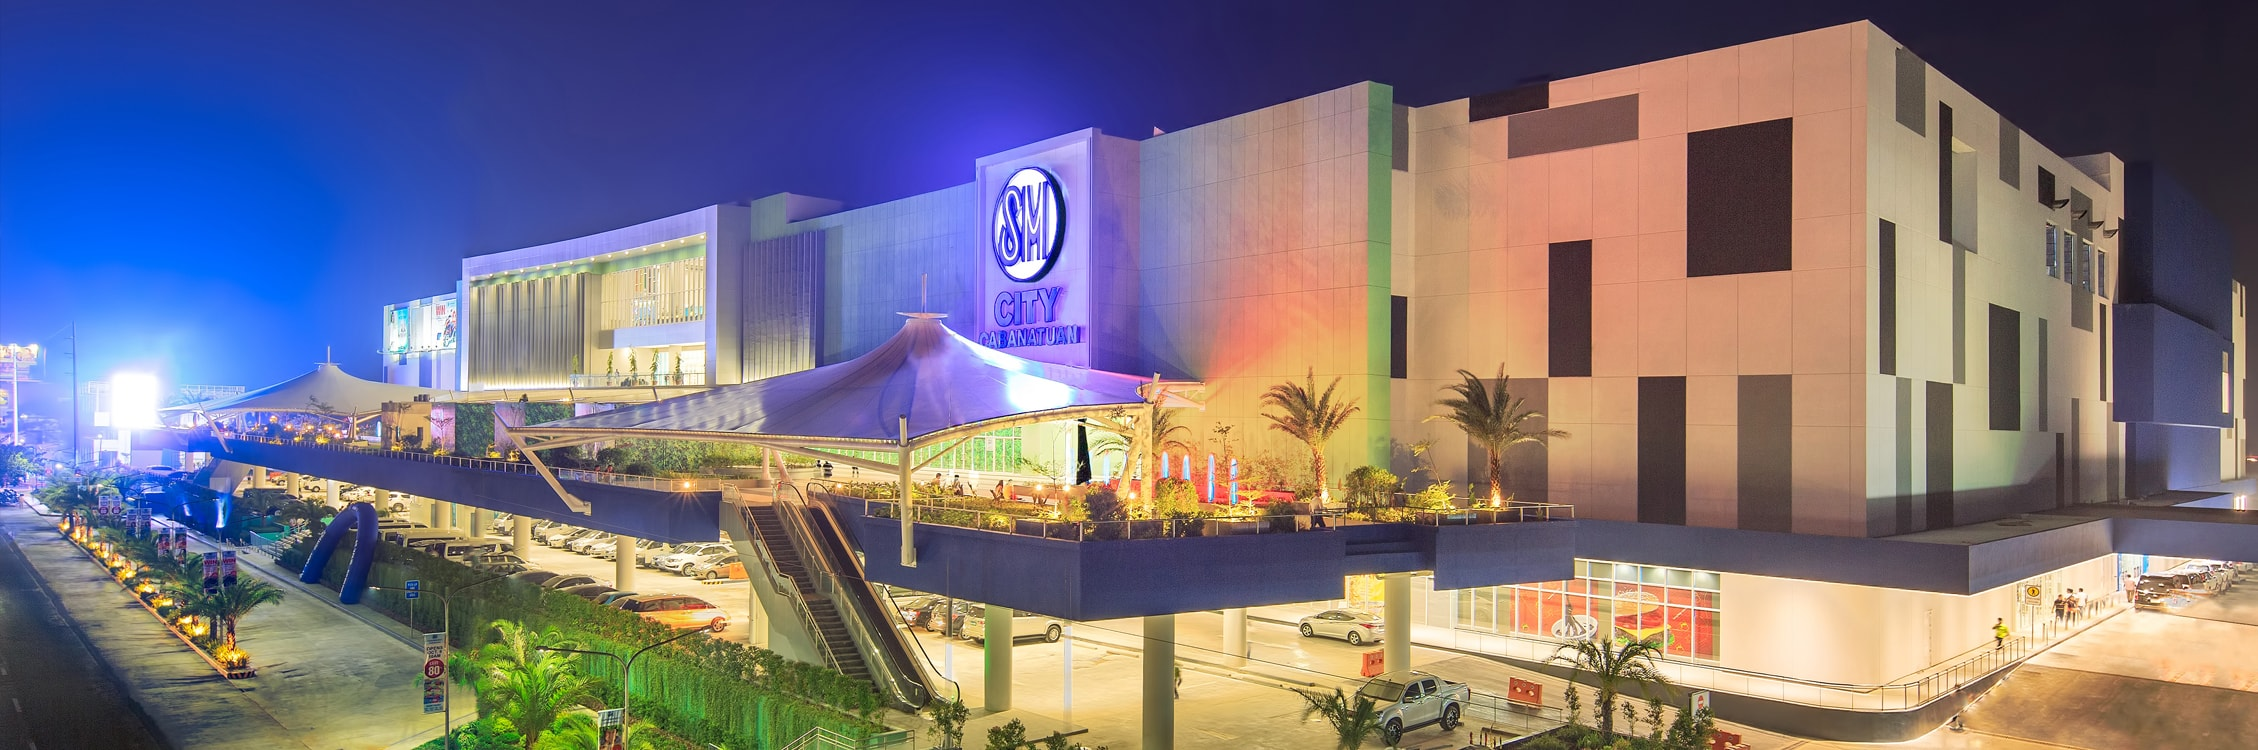 SM City Cabanatuan